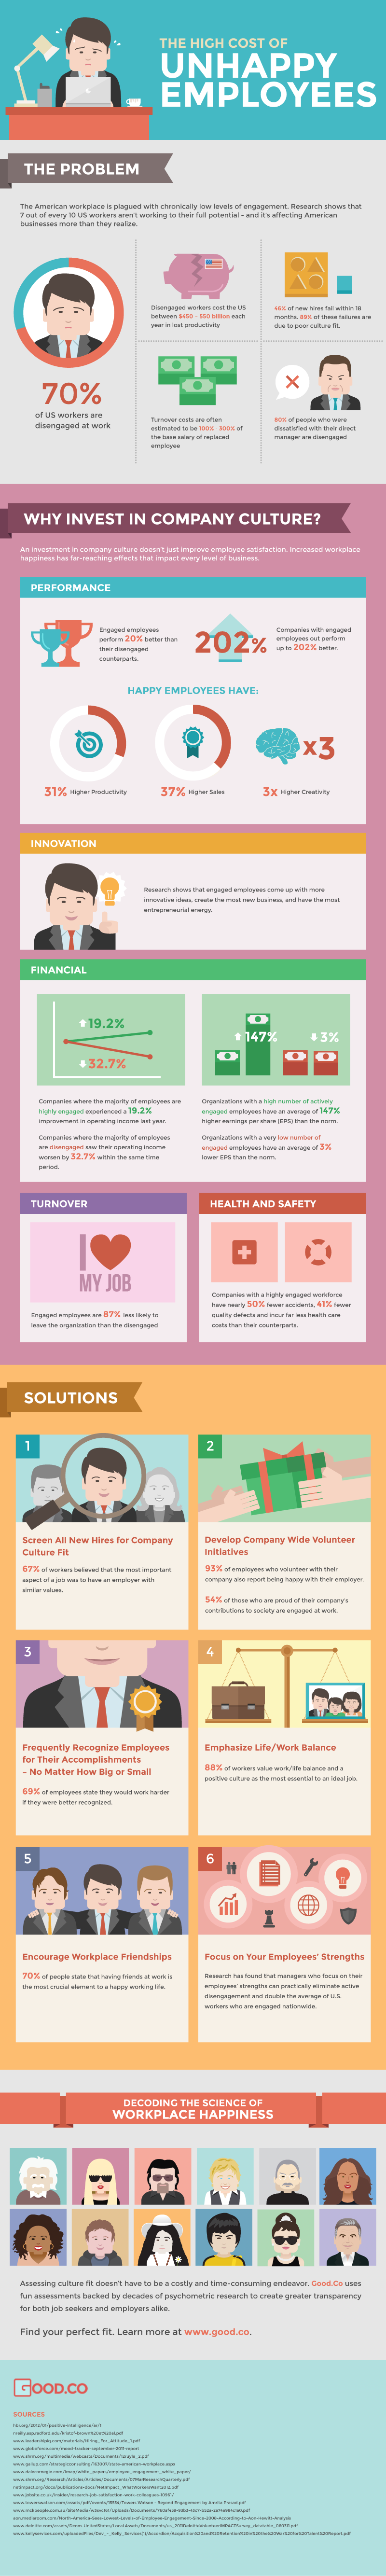 Unhappy Workers Cost the U.S. Up to $550 Billion a Year (Infographic)